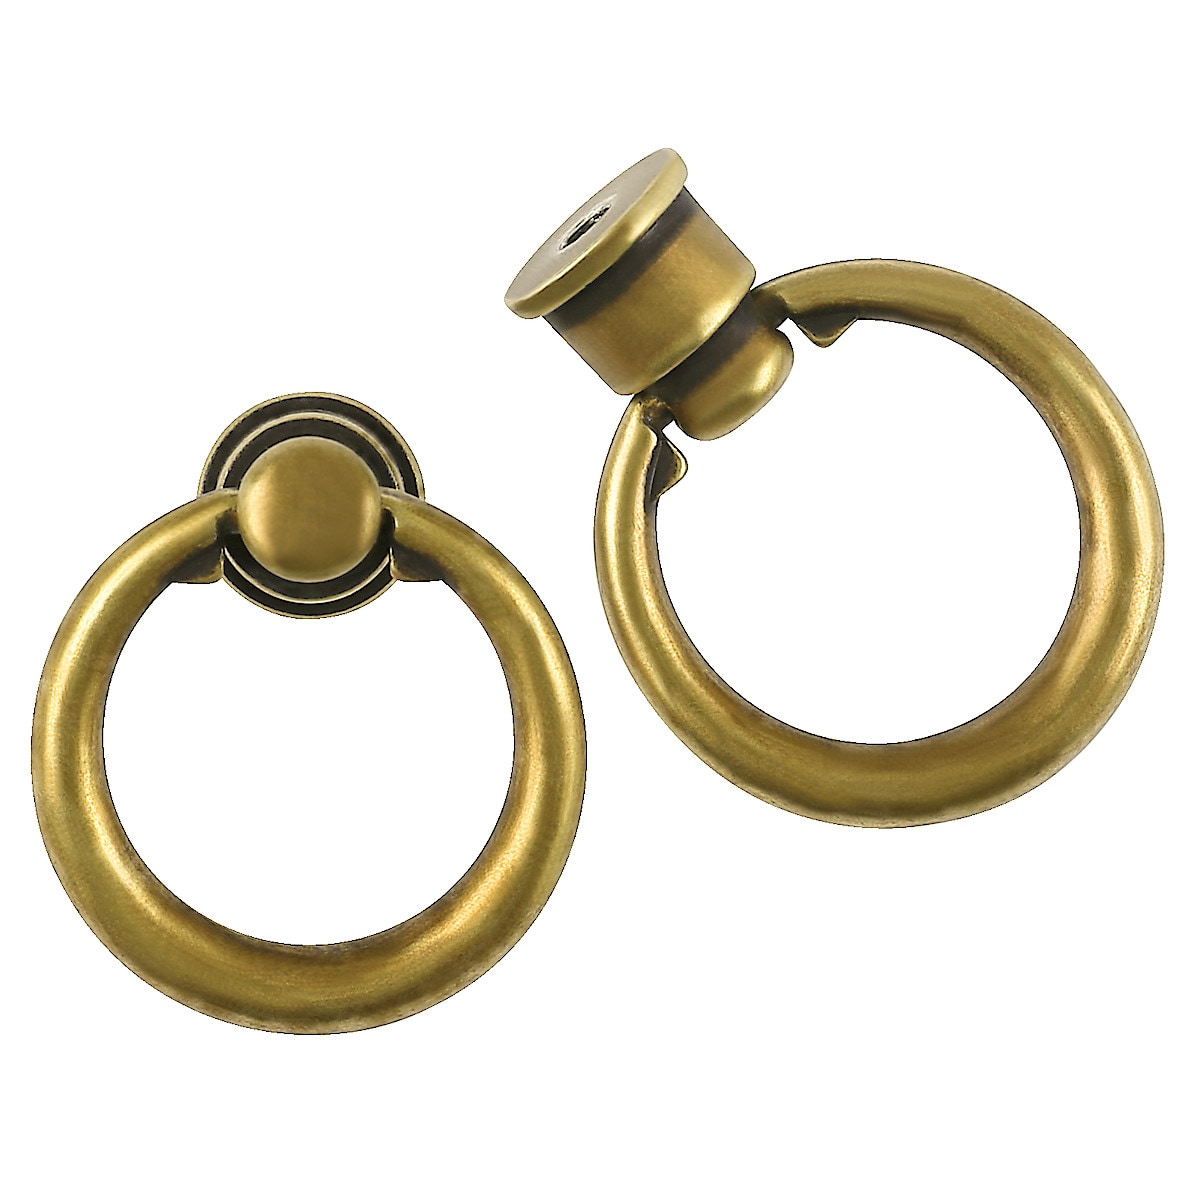 Griff mit Ring, Antikgold